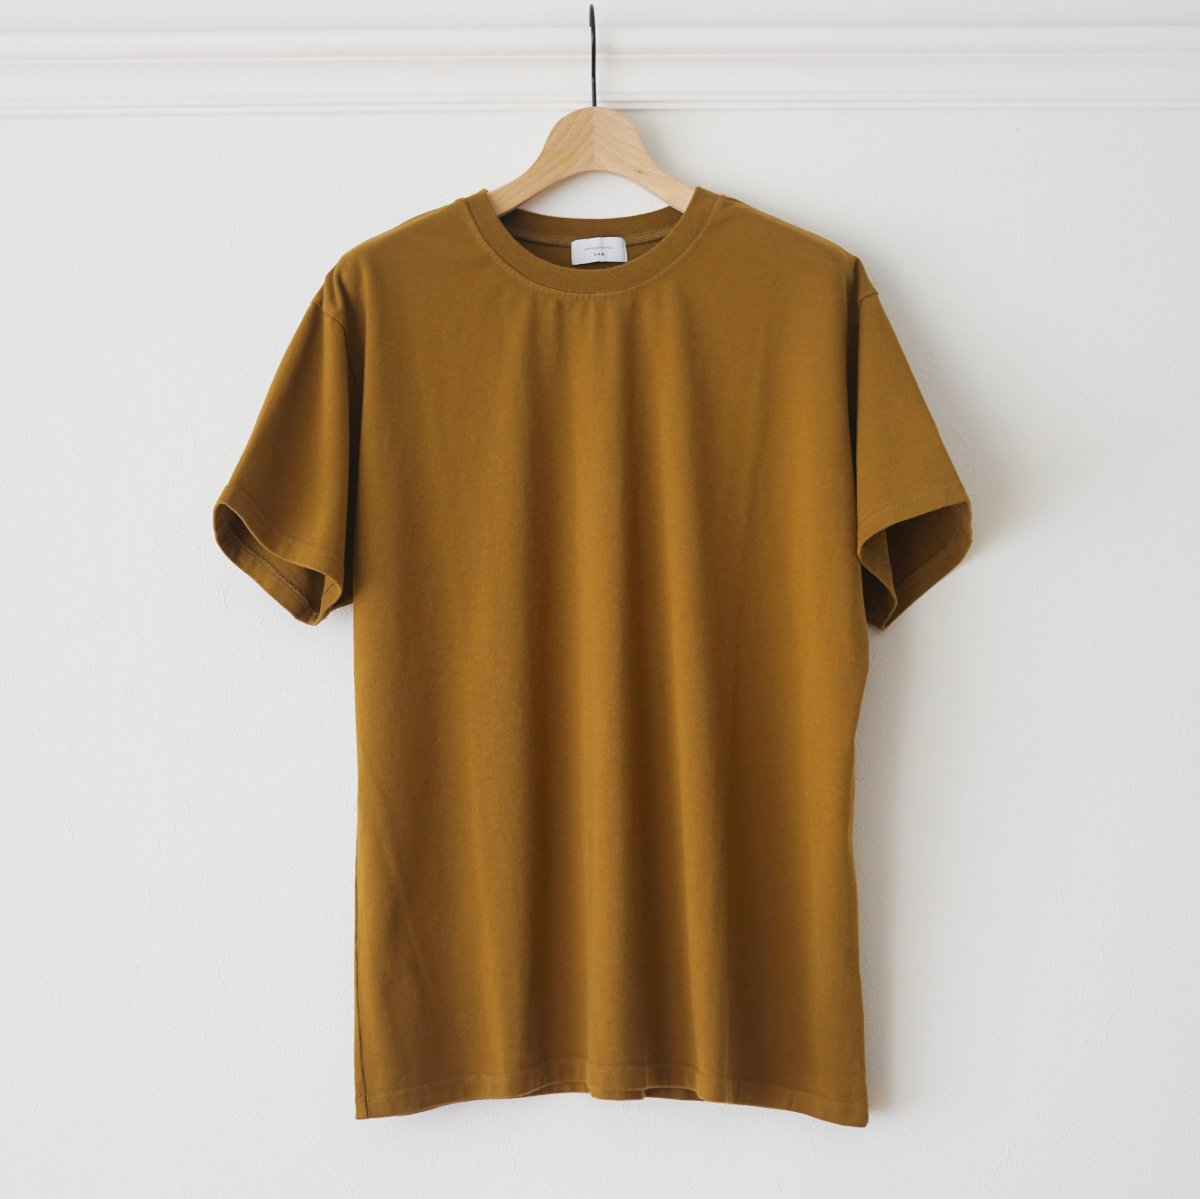 【UNDECORATED アンデコレイテッド】ORGANIC CO S/S TEE - BROWN